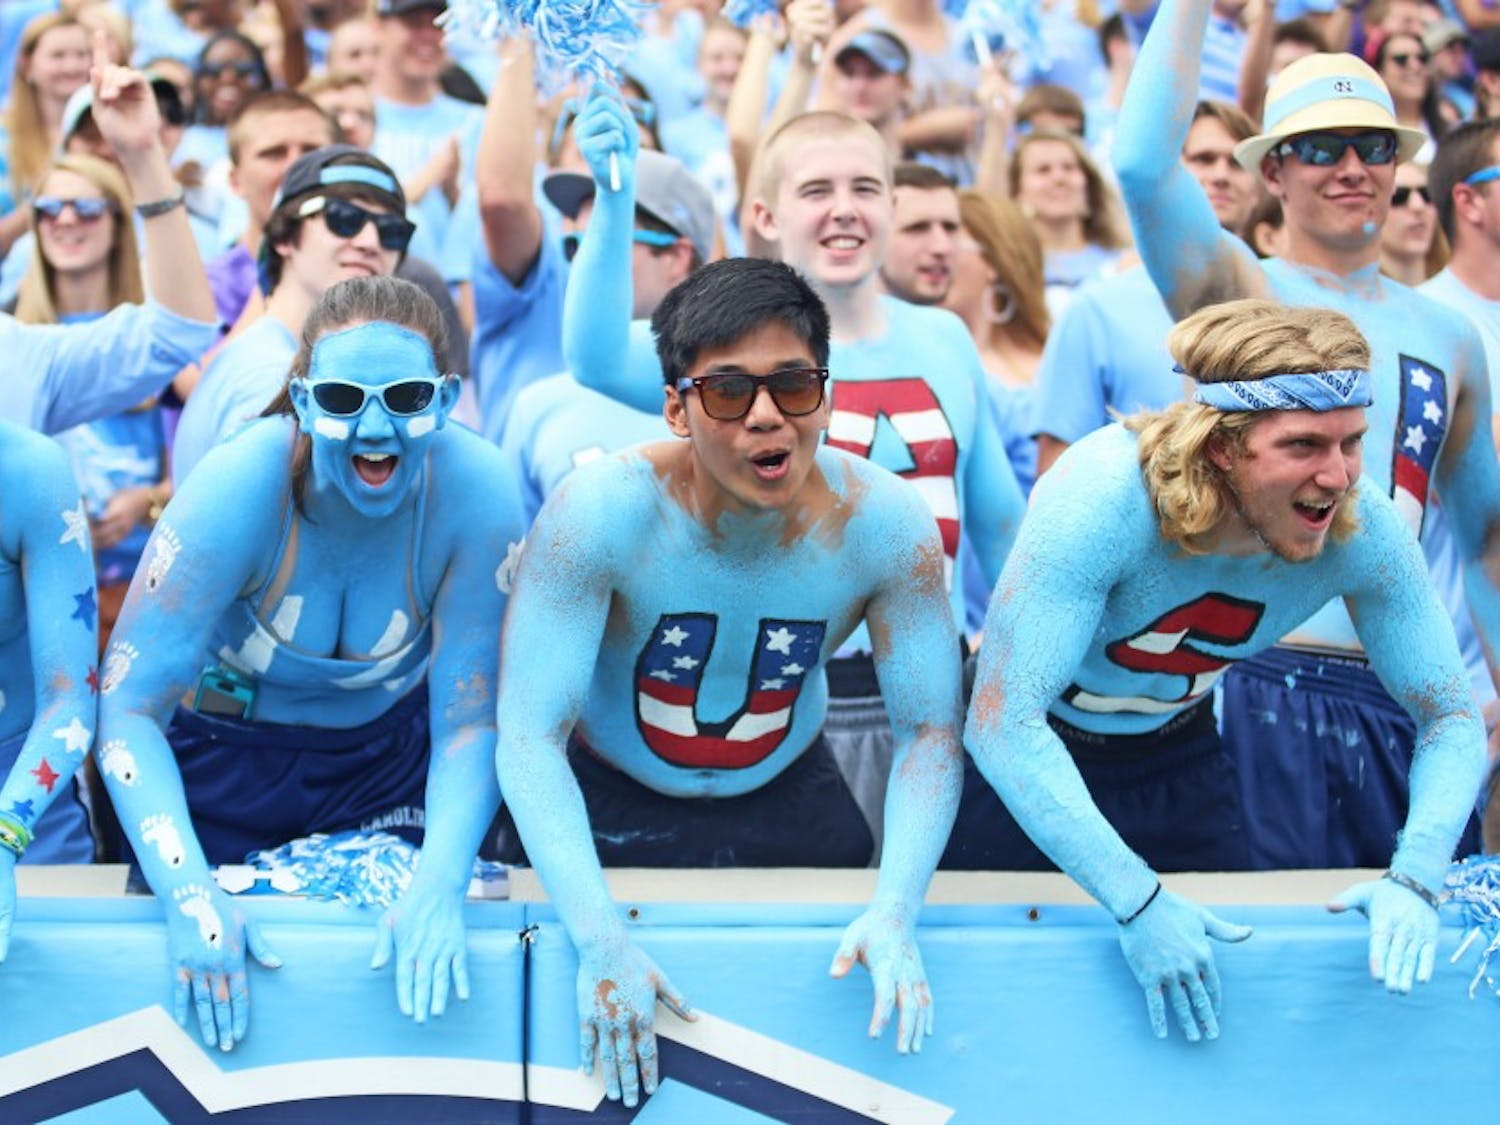 UNC students show their Carolina spirit at the game.